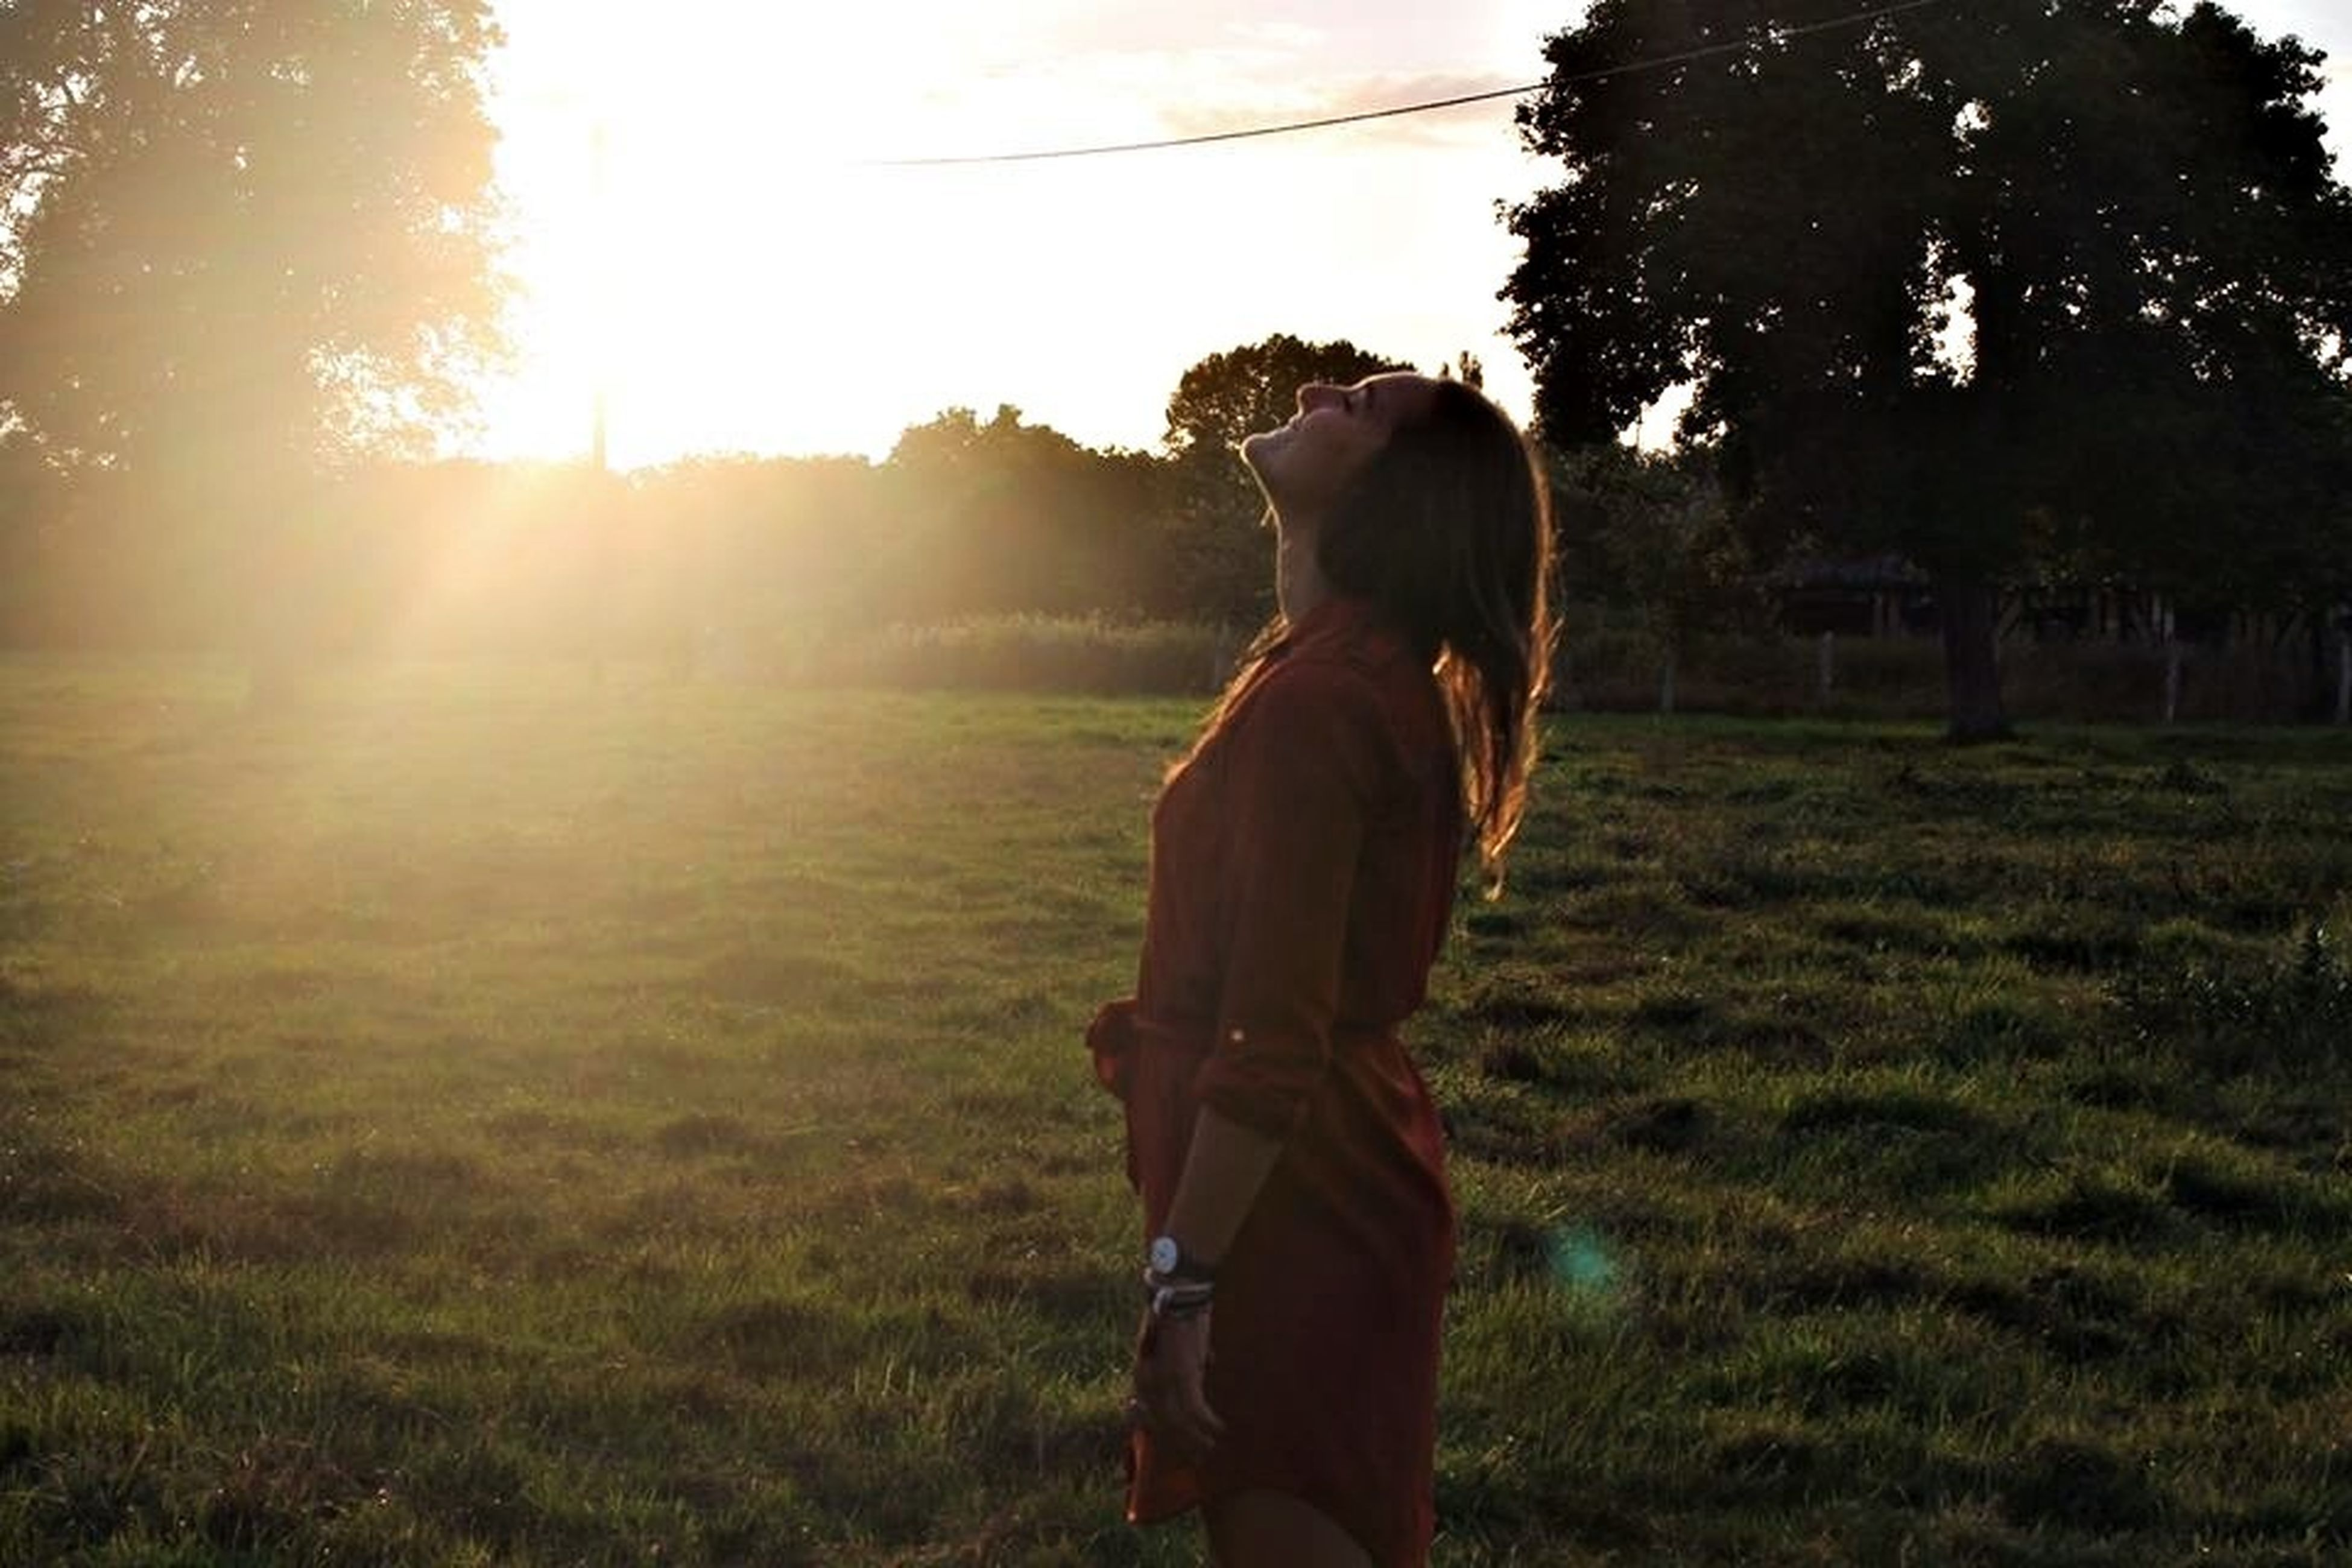 lifestyles, sun, grass, sunbeam, leisure activity, sunlight, casual clothing, tree, lens flare, field, full length, standing, young adult, rear view, three quarter length, grassy, sky, young women